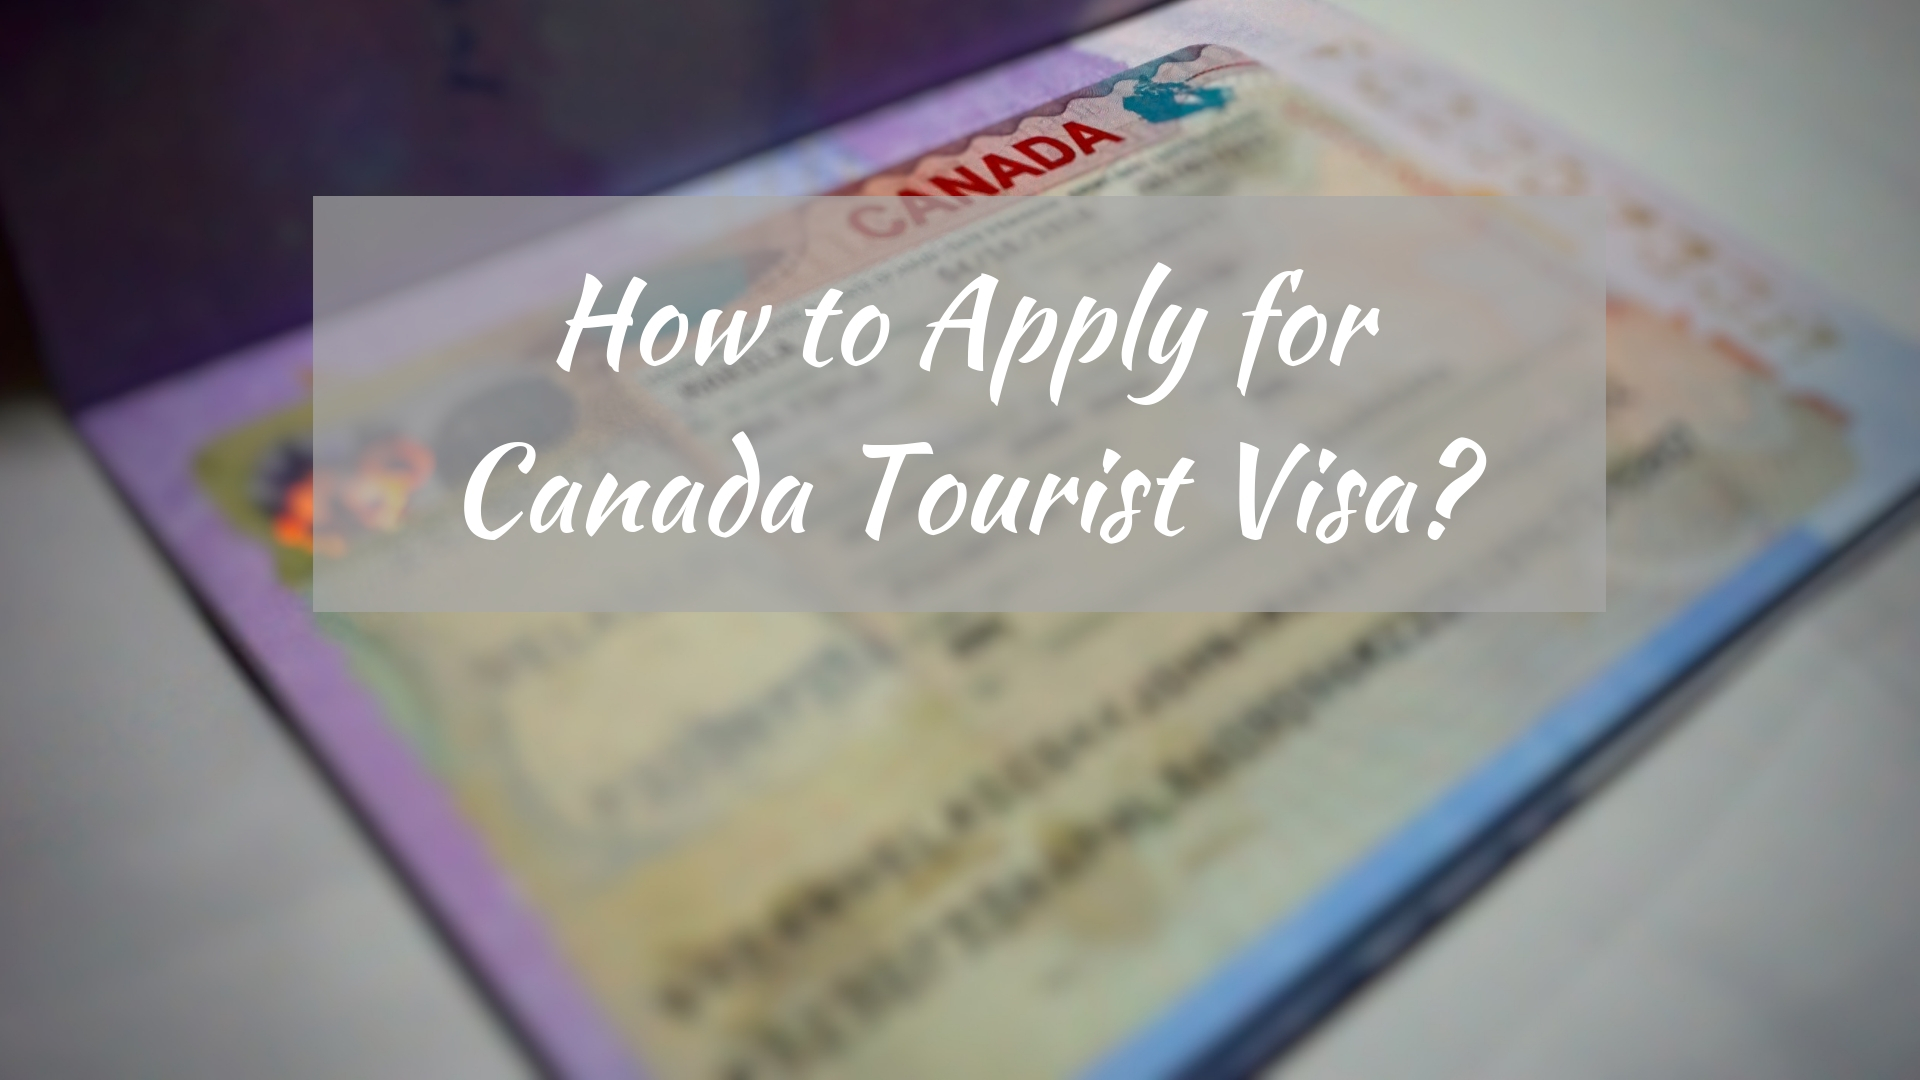 Canada-Tourist-Visa Visa Application Korea From Vancouver on myanmar south, requirements coe, contoh kop surat ud, free travel, which one is confirmation number, accepted south, so nhap canh,